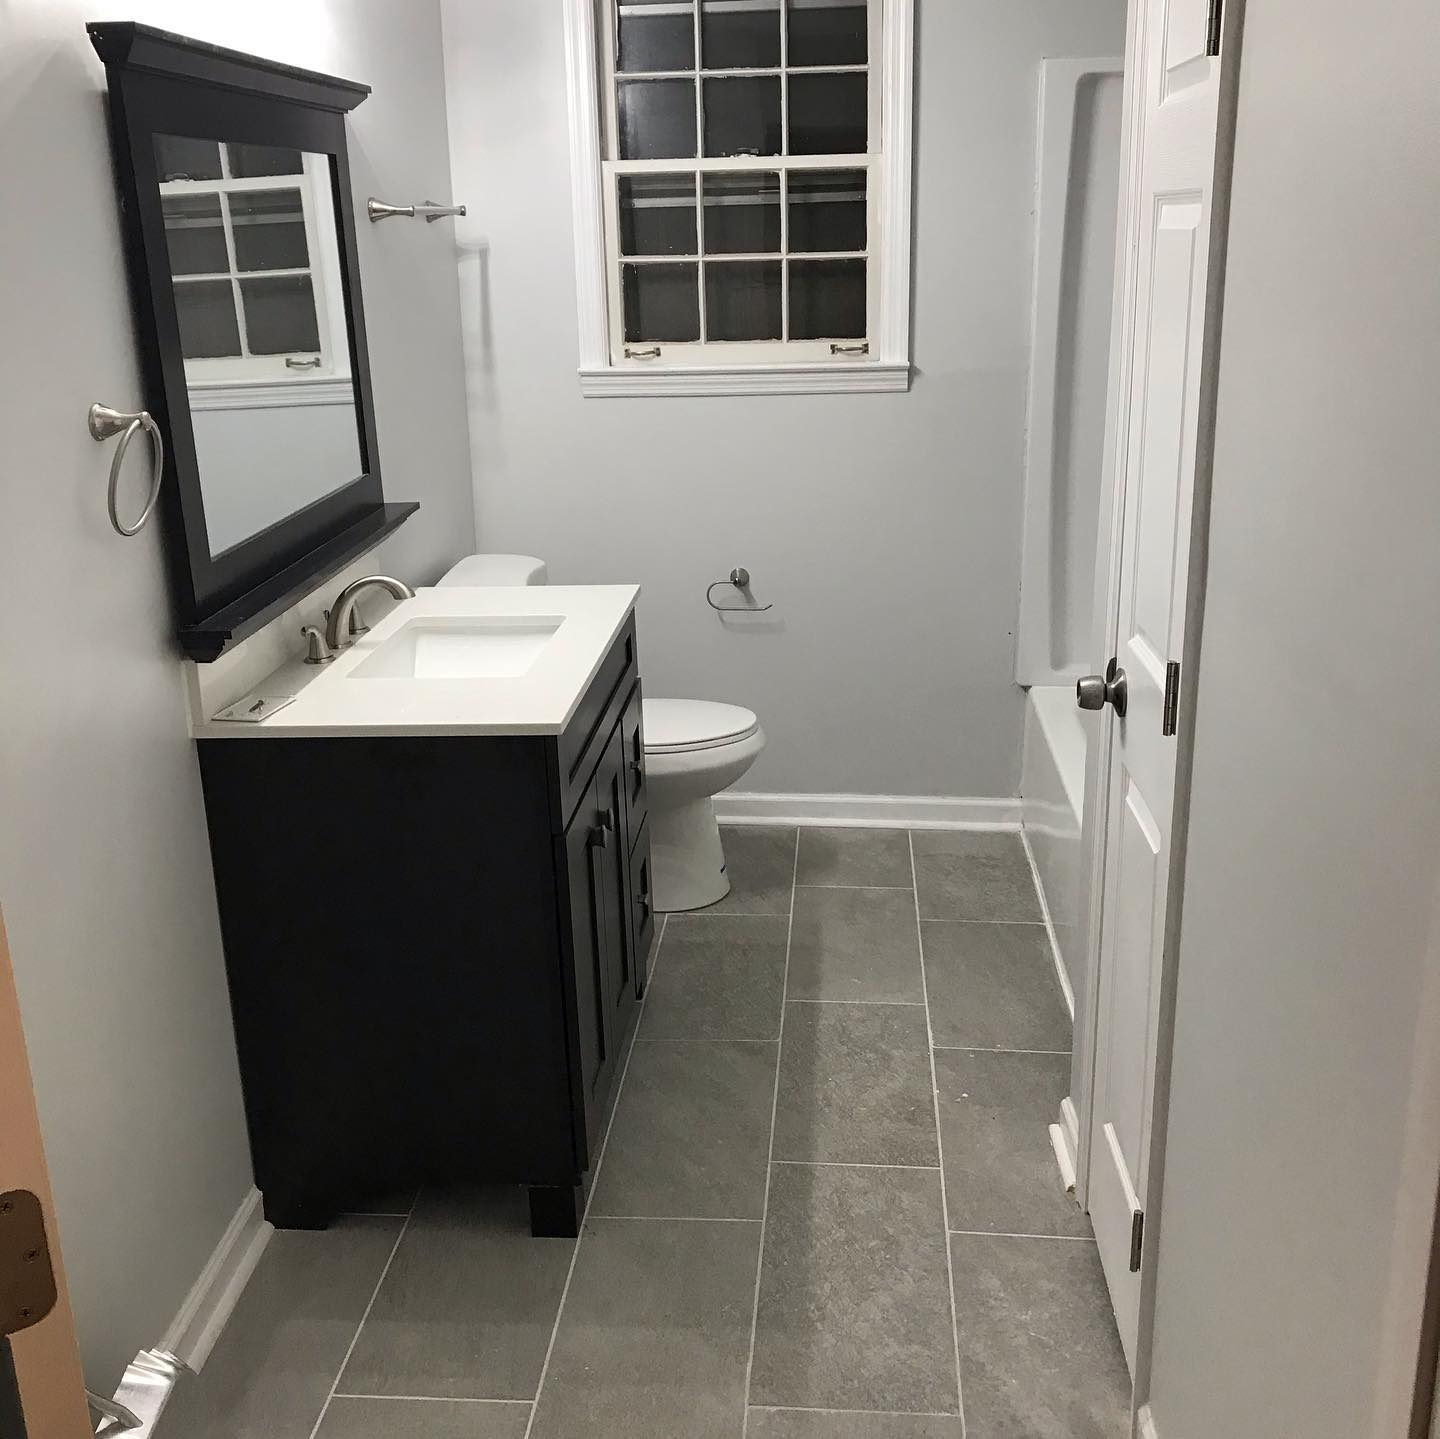 1905's Bathroom Restoration